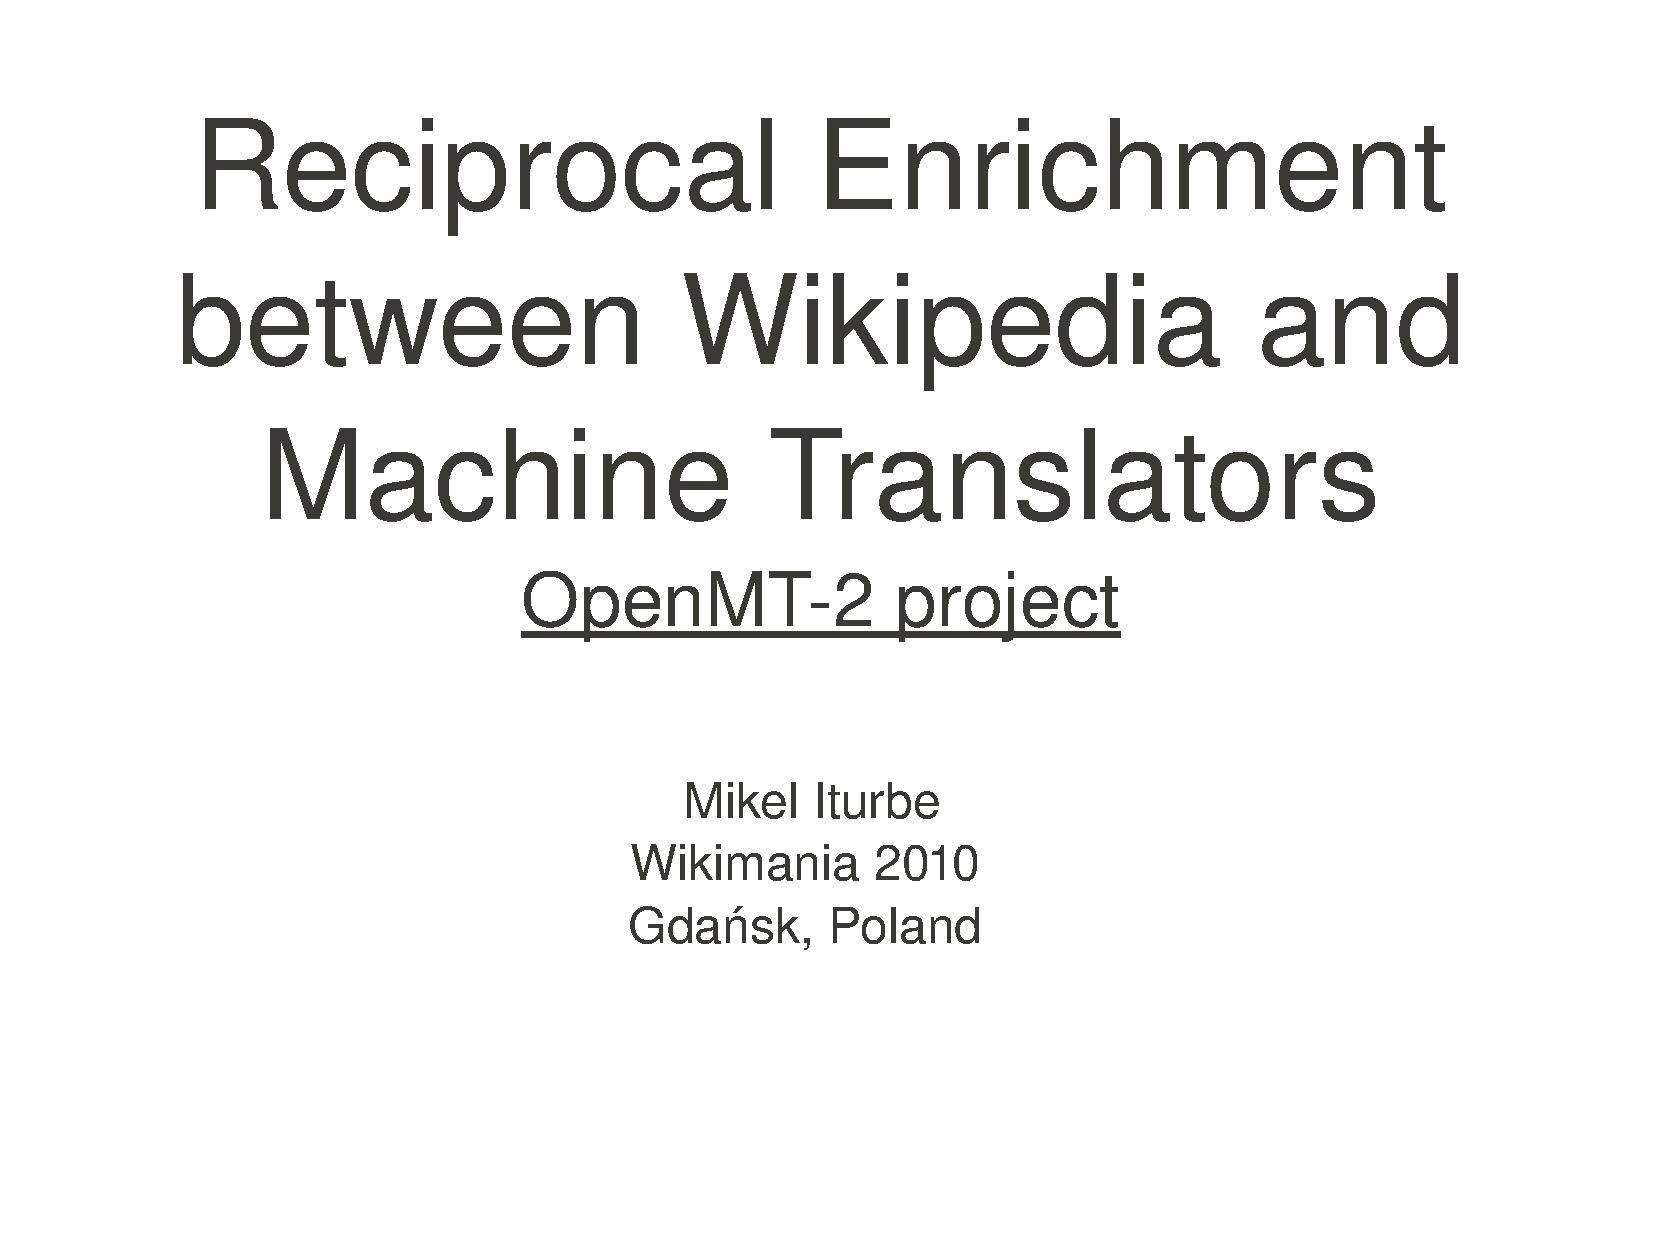 Reciprocal Enrichment between Wikipedia and Machine Translators.pdf